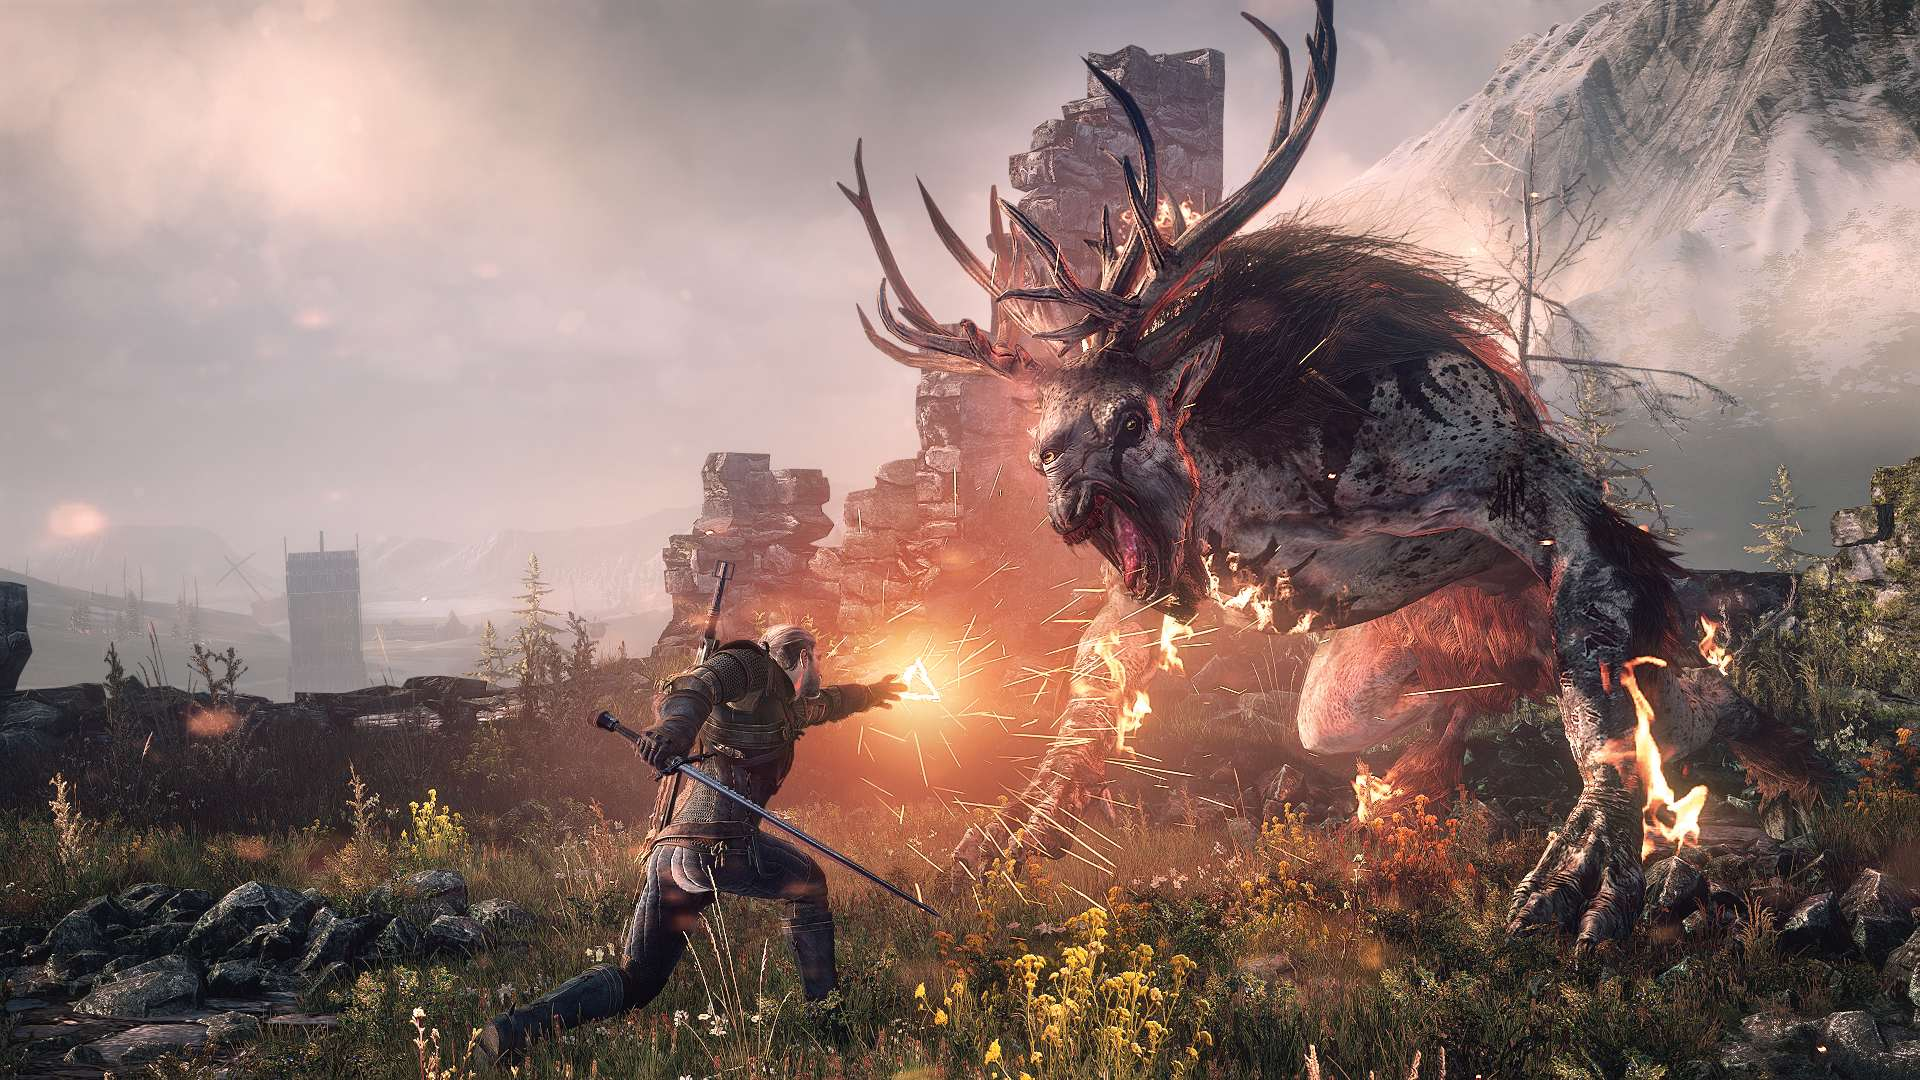 The Witcher 3: Wild Hunt vs Assassin's Creed Odyssey